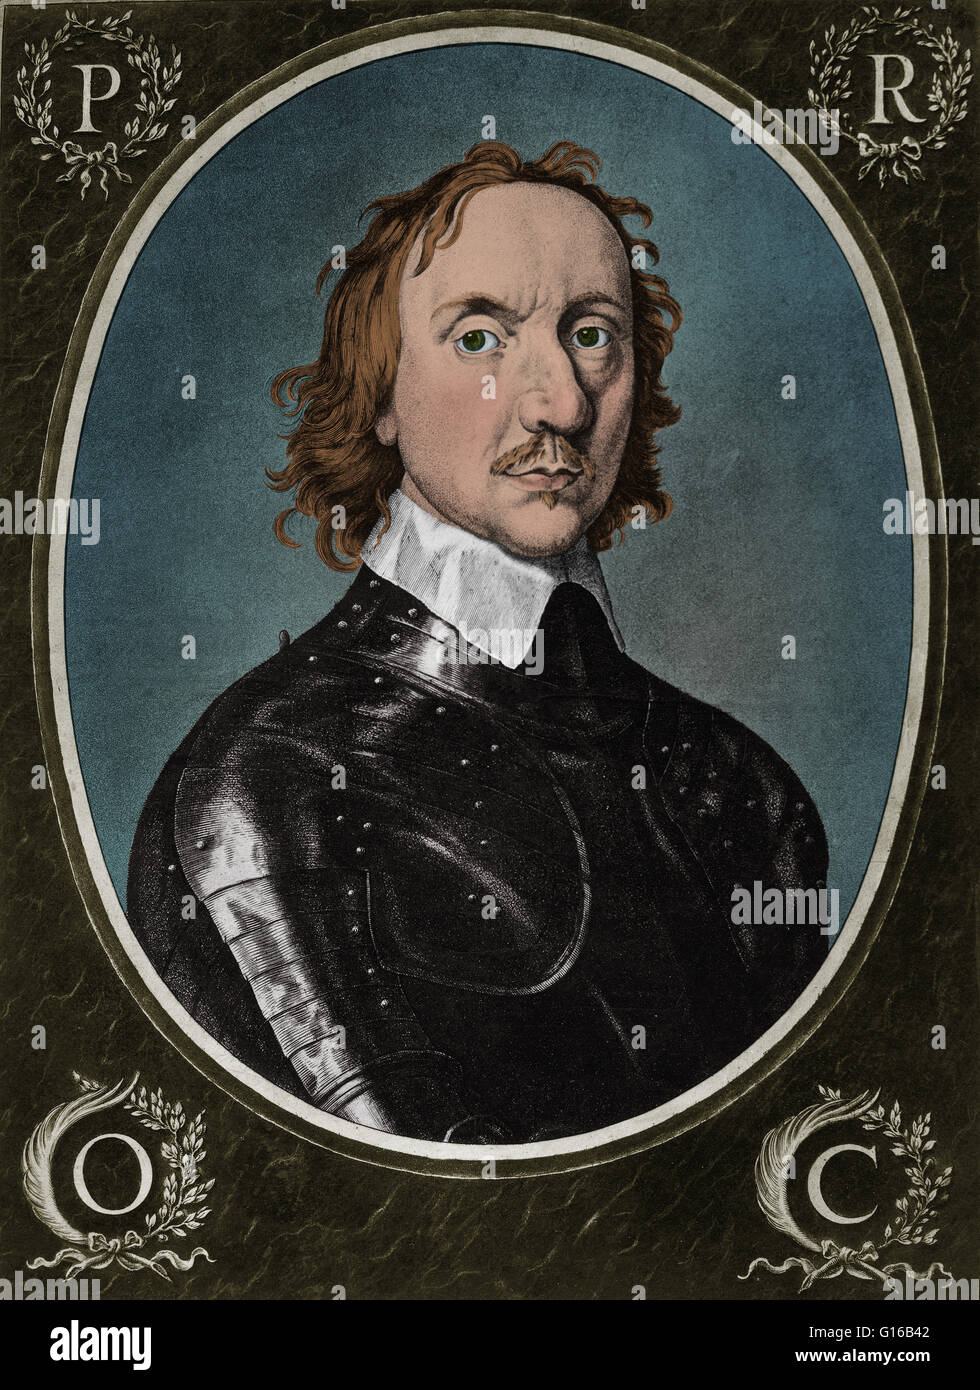 Oliver Cromwell (1599-1658), English political leader and military commander, who was instrumental in the English - Stock Image